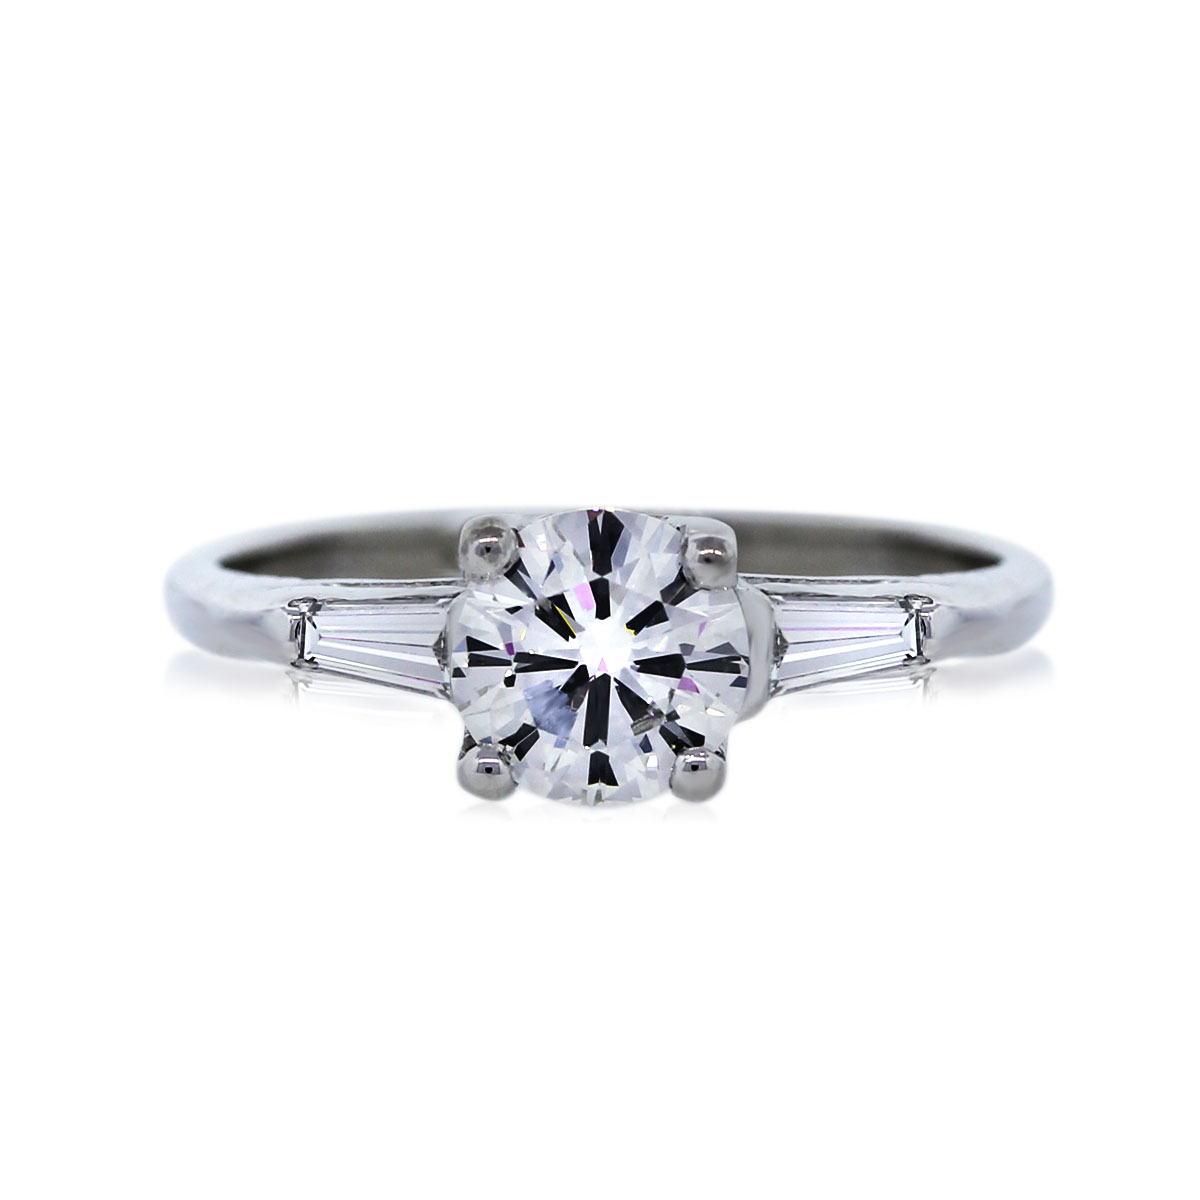 You are viewing this Stunning GIA Certified Engagement Ring